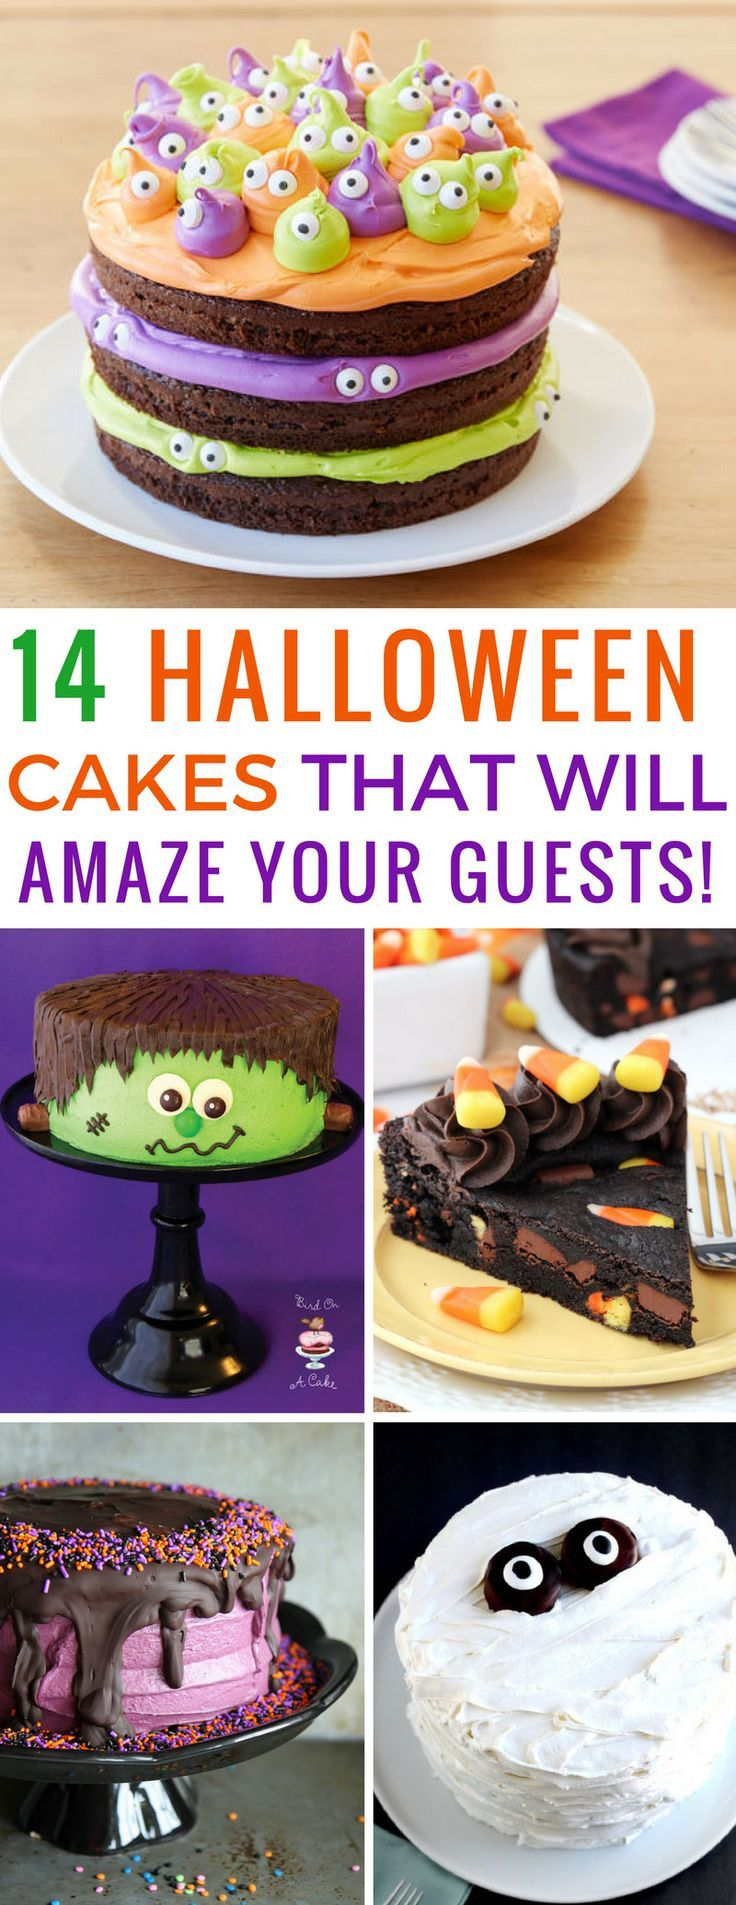 14 easy halloween cake recipes for kids perfect for parties - Easy Halloween Cake Decorating Ideas